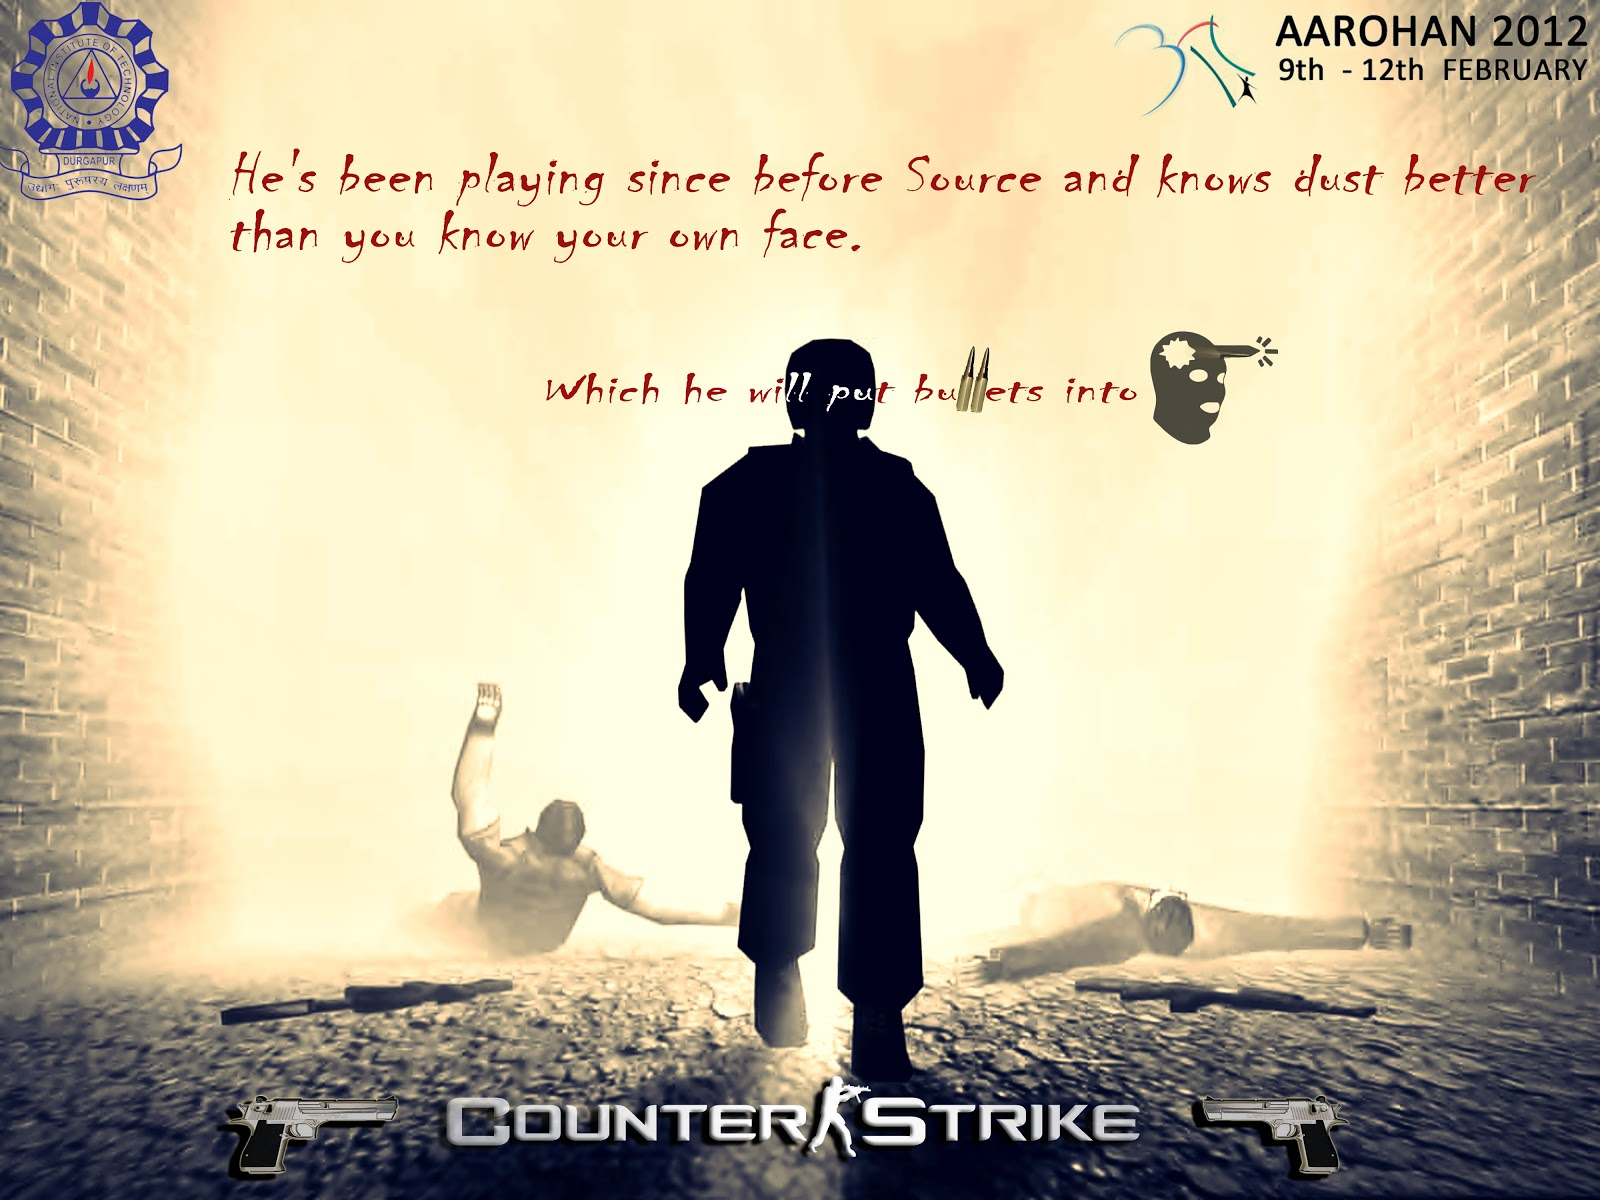 http://1.bp.blogspot.com/-TpnpUaRGW3w/Ty60B-c8E2I/AAAAAAAAAWo/nH6yCfqjOzQ/s1600/counter-strike-games-wallpaper-18+%282%29.jpg